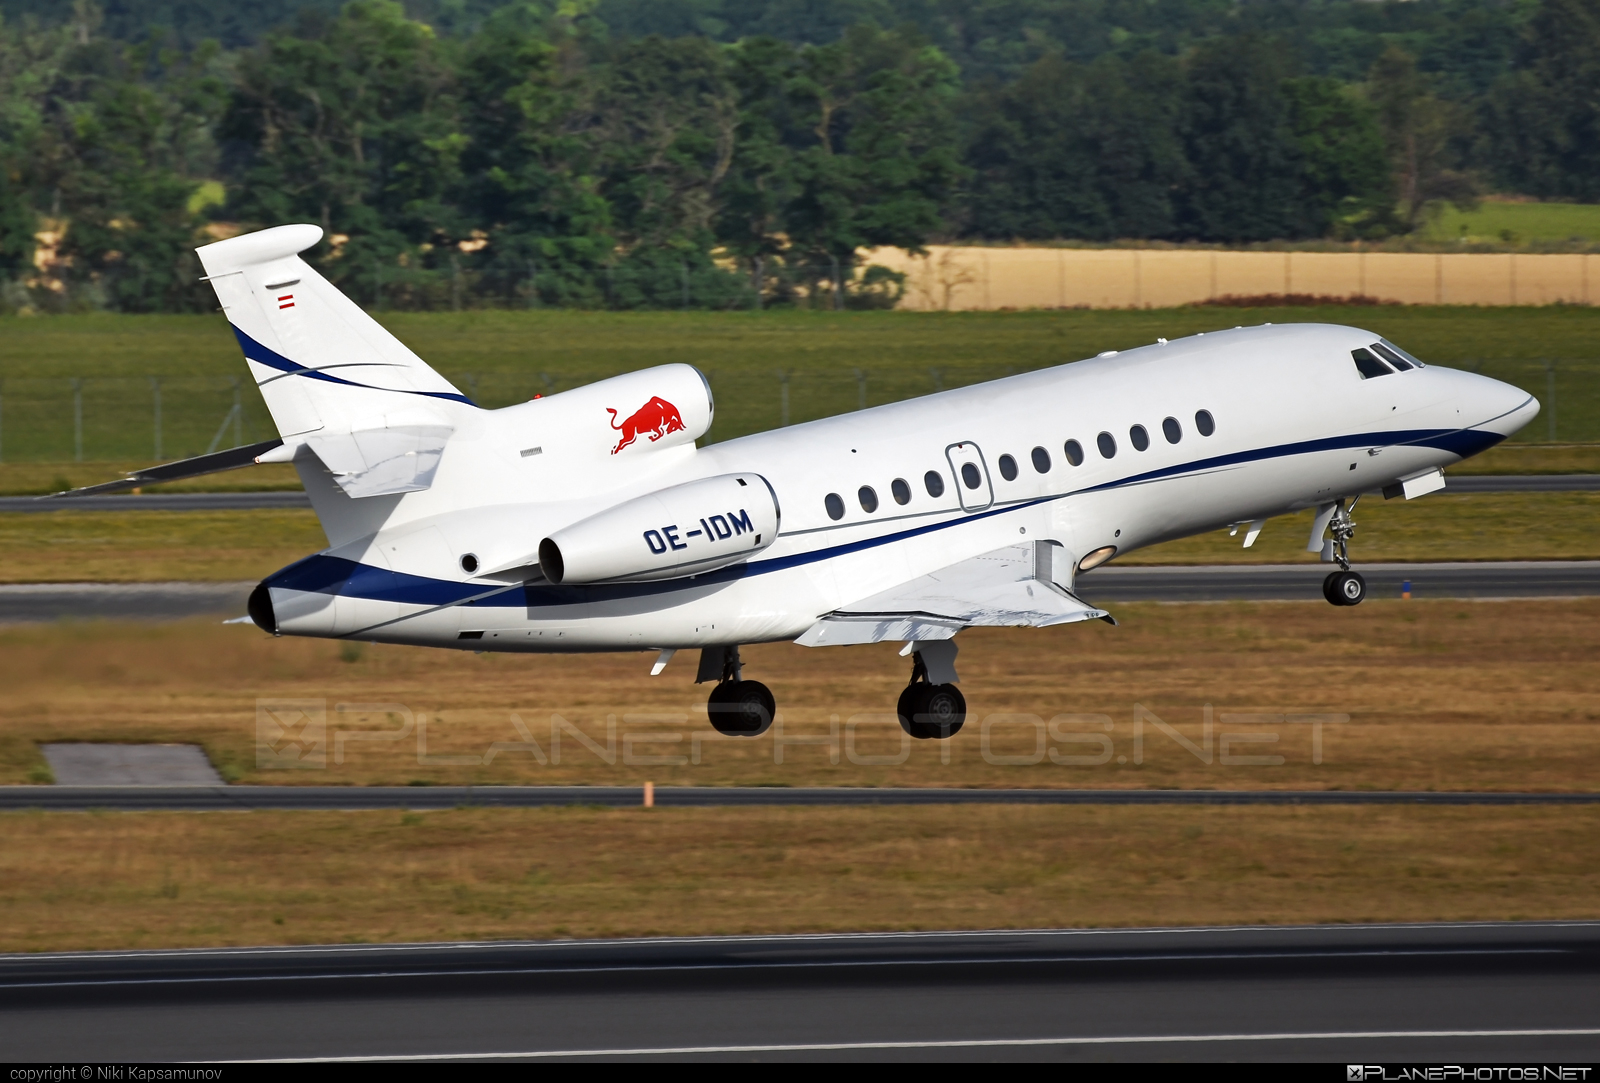 Dassault Falcon 900EX - OE-IDM operated by Red Bull Racing Team #dassault